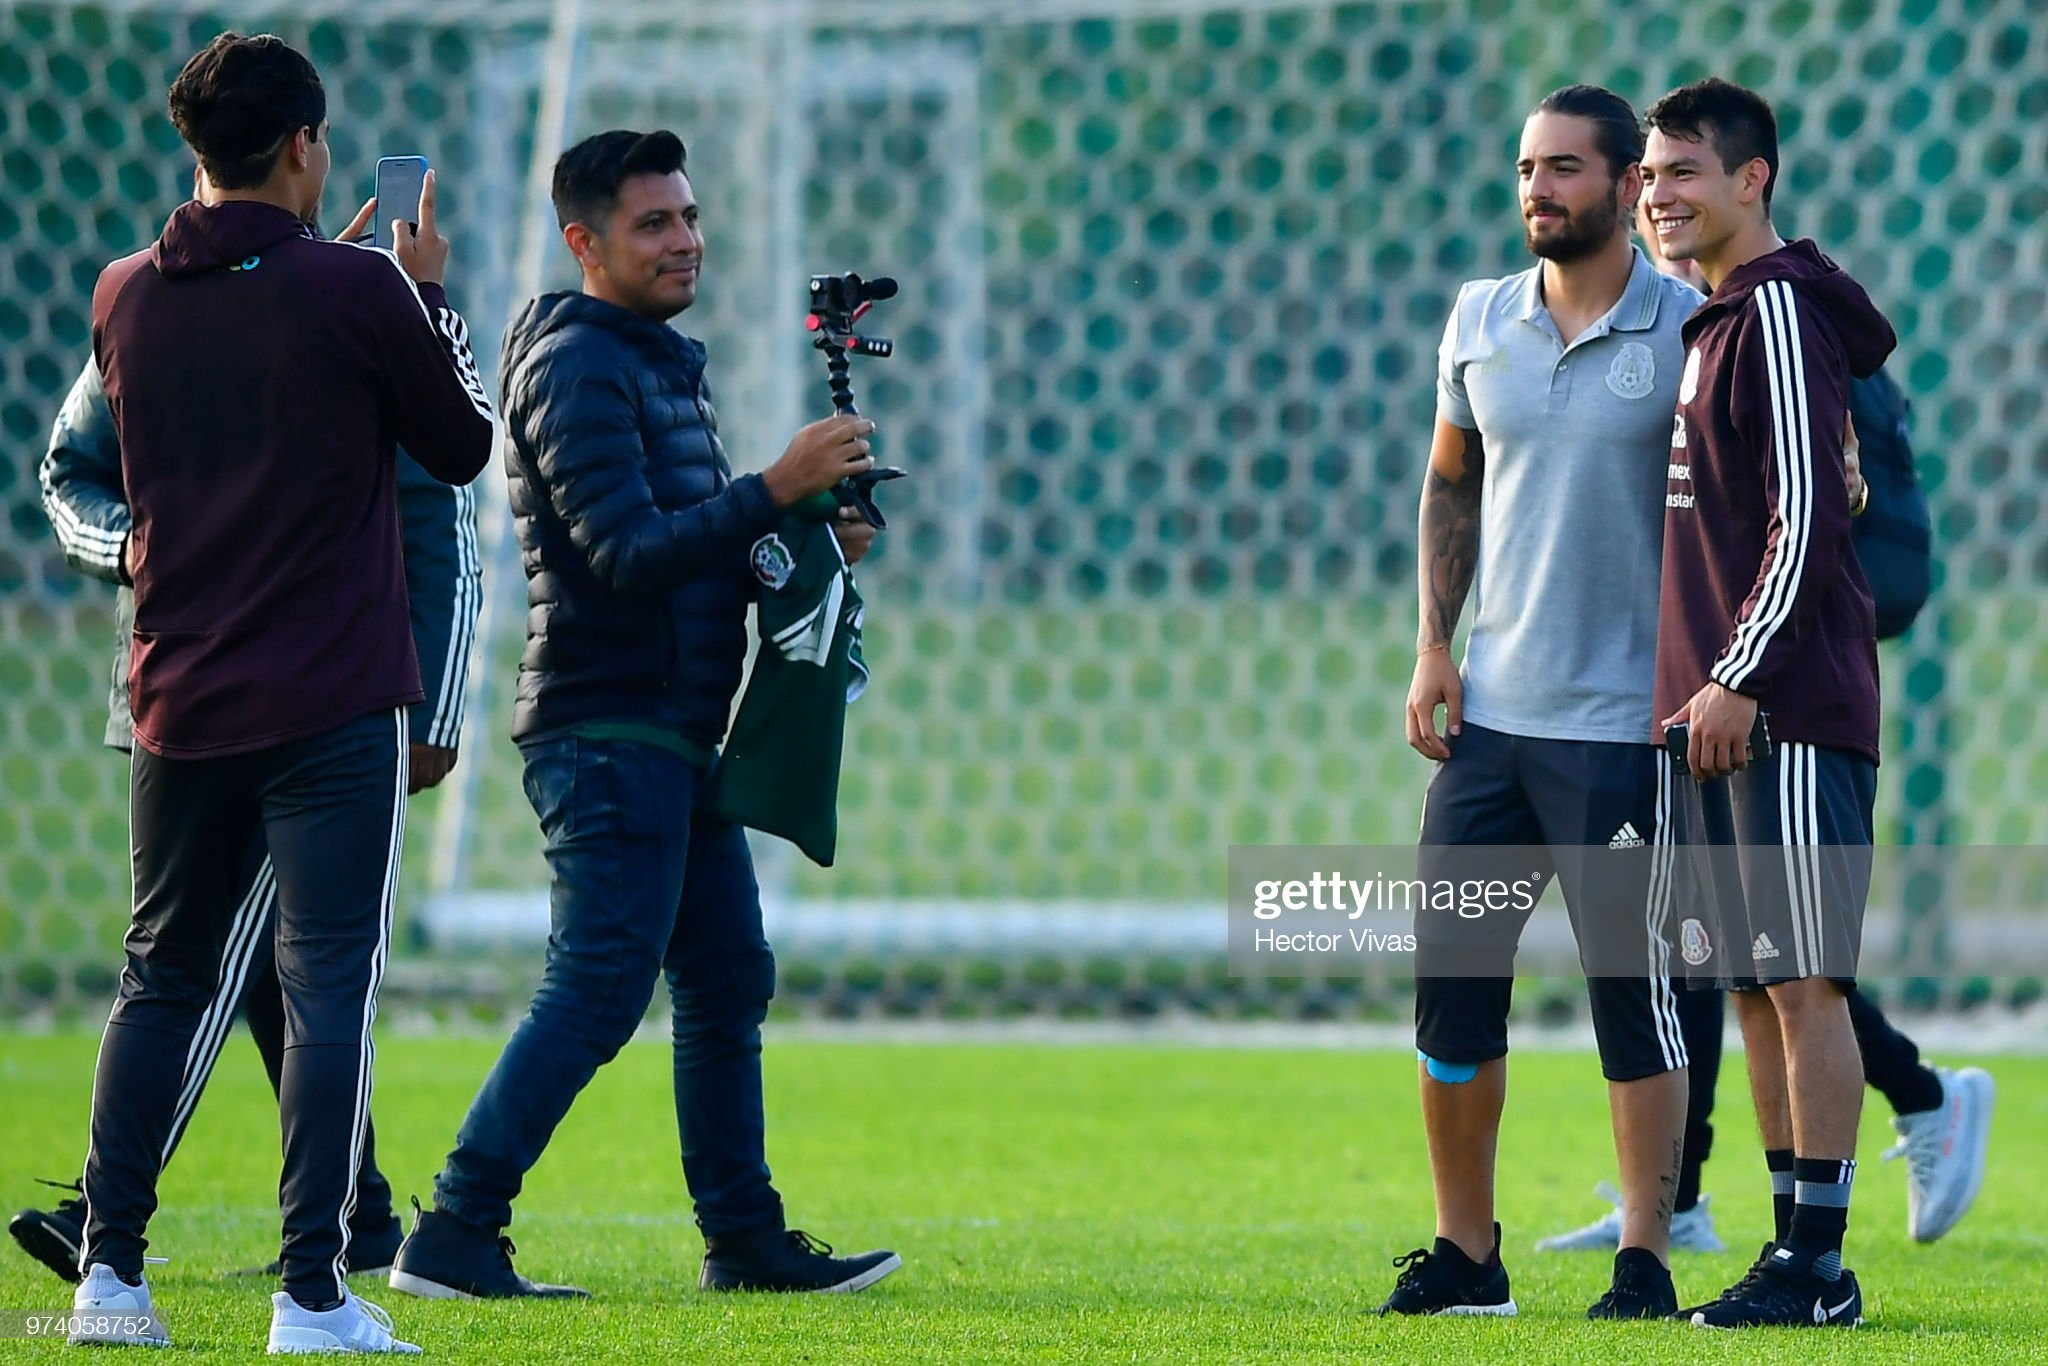 ¿Cuánto mide Maluma? - Altura - Real height Hirving-lozano-of-mexico-and-singer-maluma-pose-for-pictures-during-a-picture-id974058752?s=2048x2048